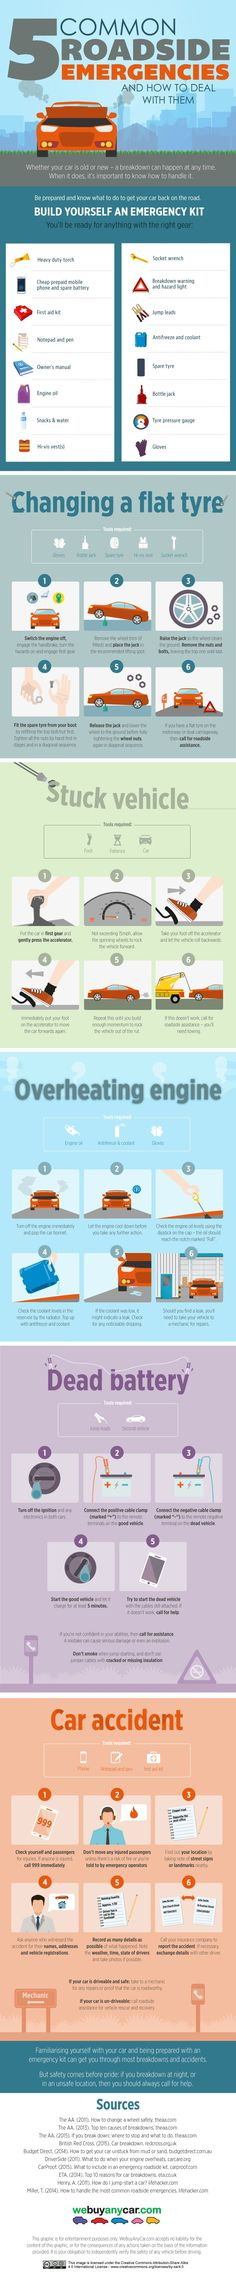 5 Roadside Emergencies and How to Deal With Them #infographic #Driving #Health #Emergency